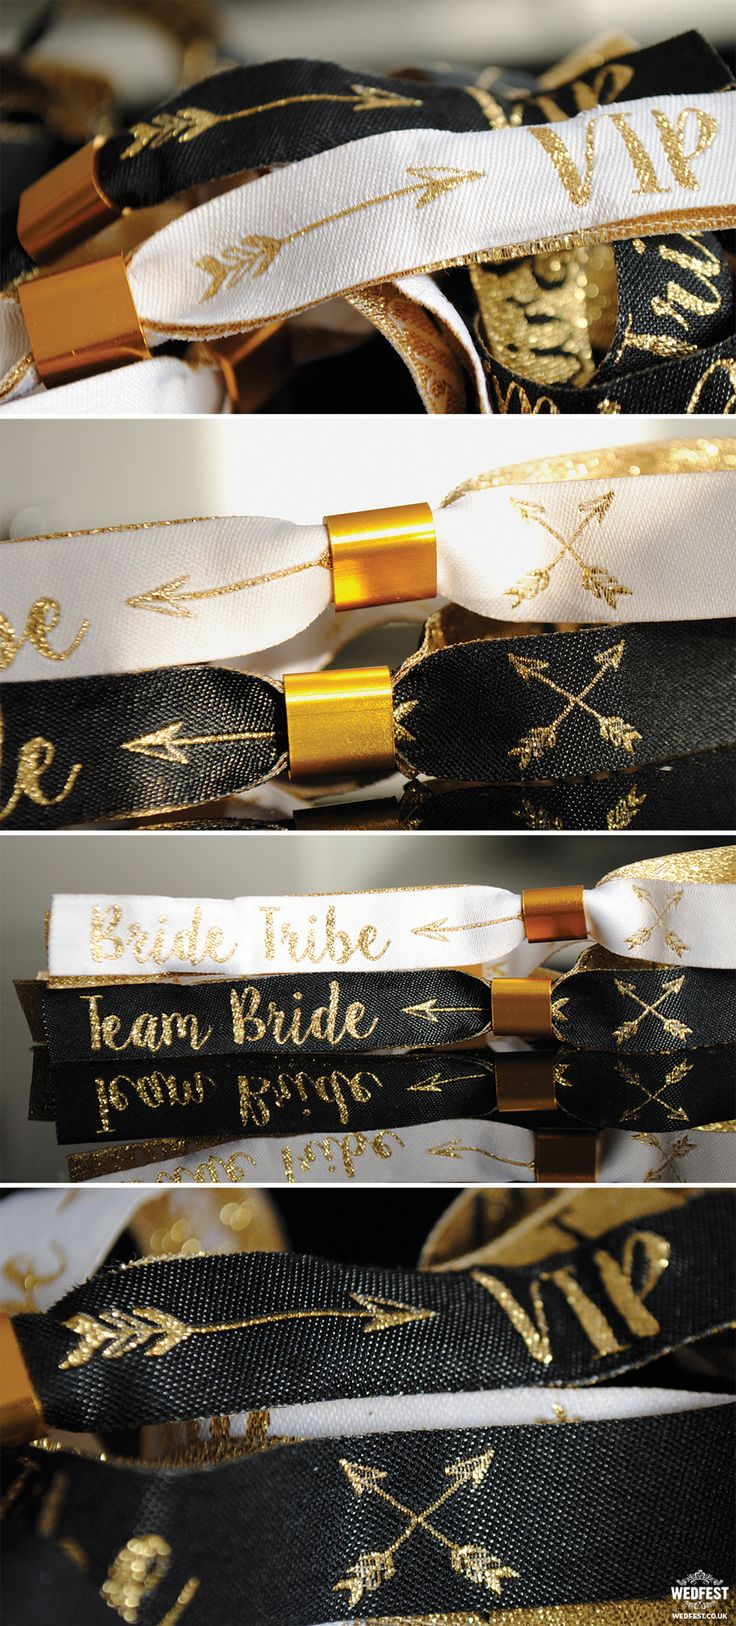 bride tribe hen party accessory http://www.wedfest.co/bride-tribe-hen-party-wristbands/